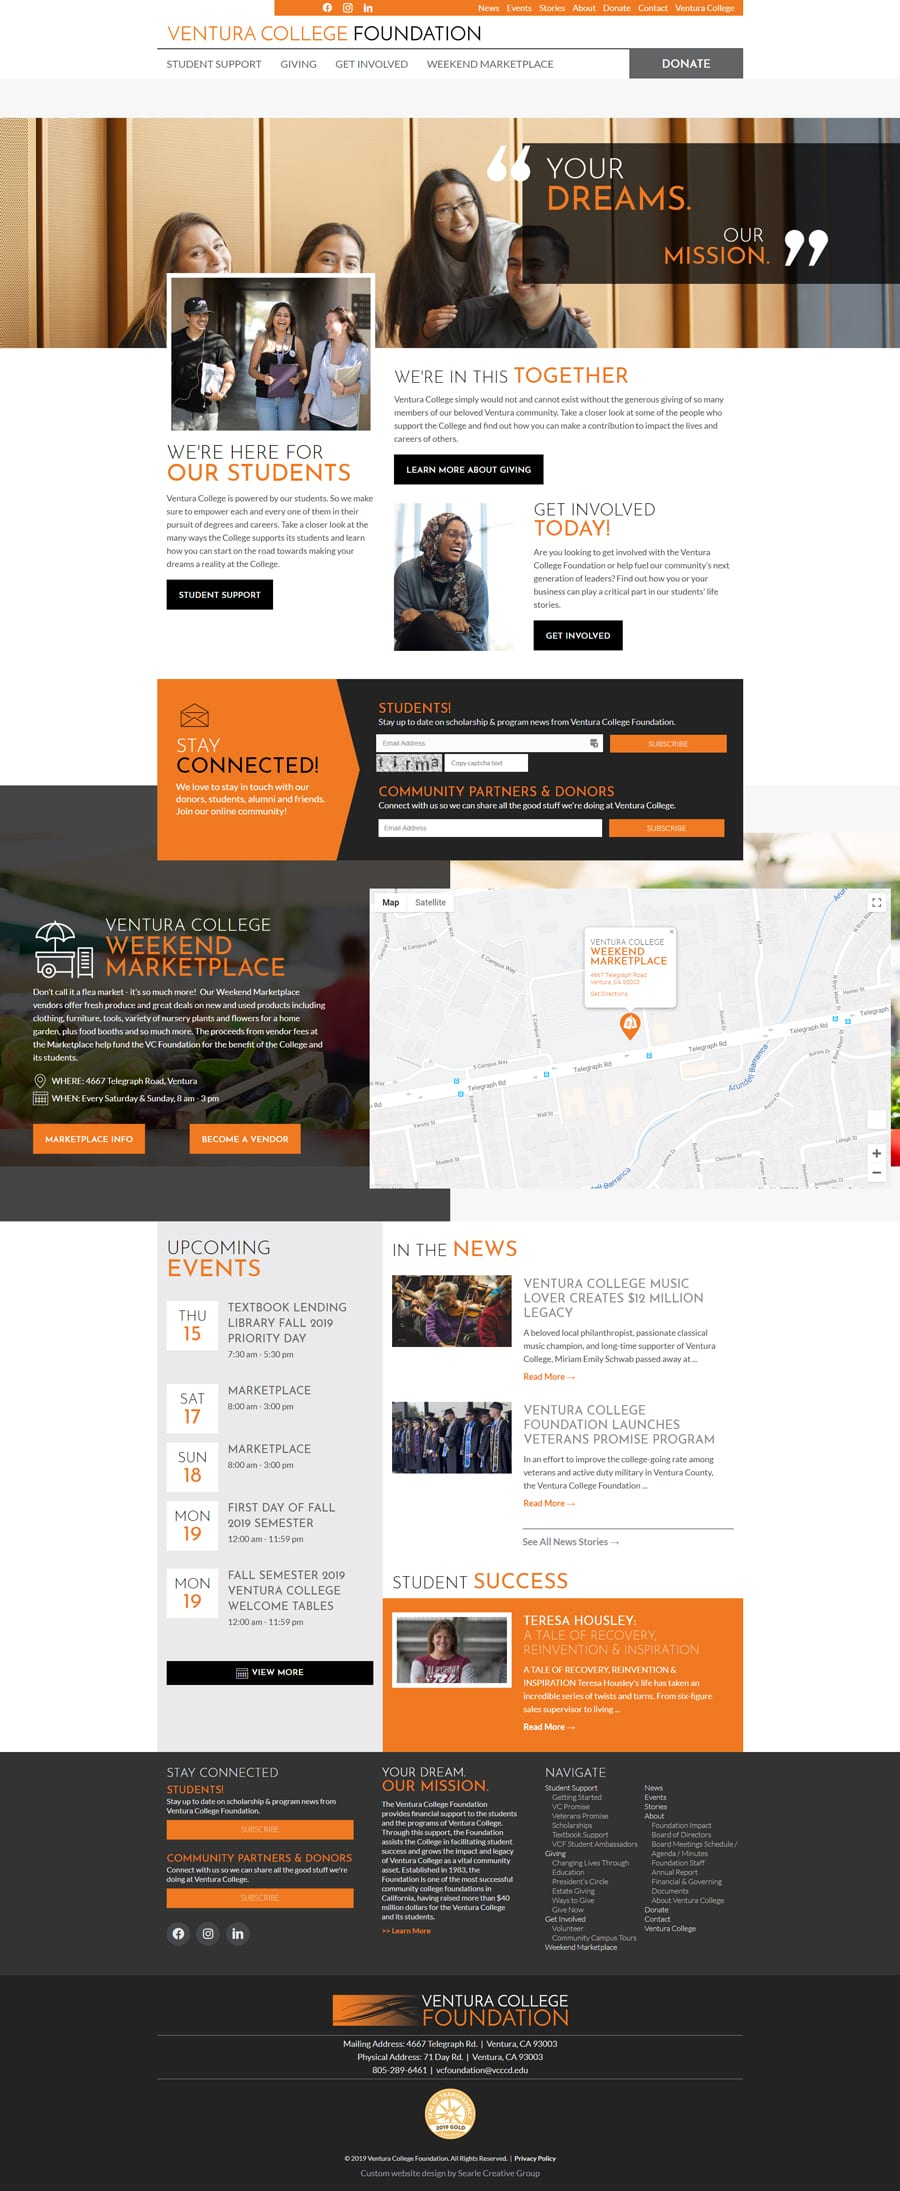 'Ventura College Foundation' Custom foundation website design